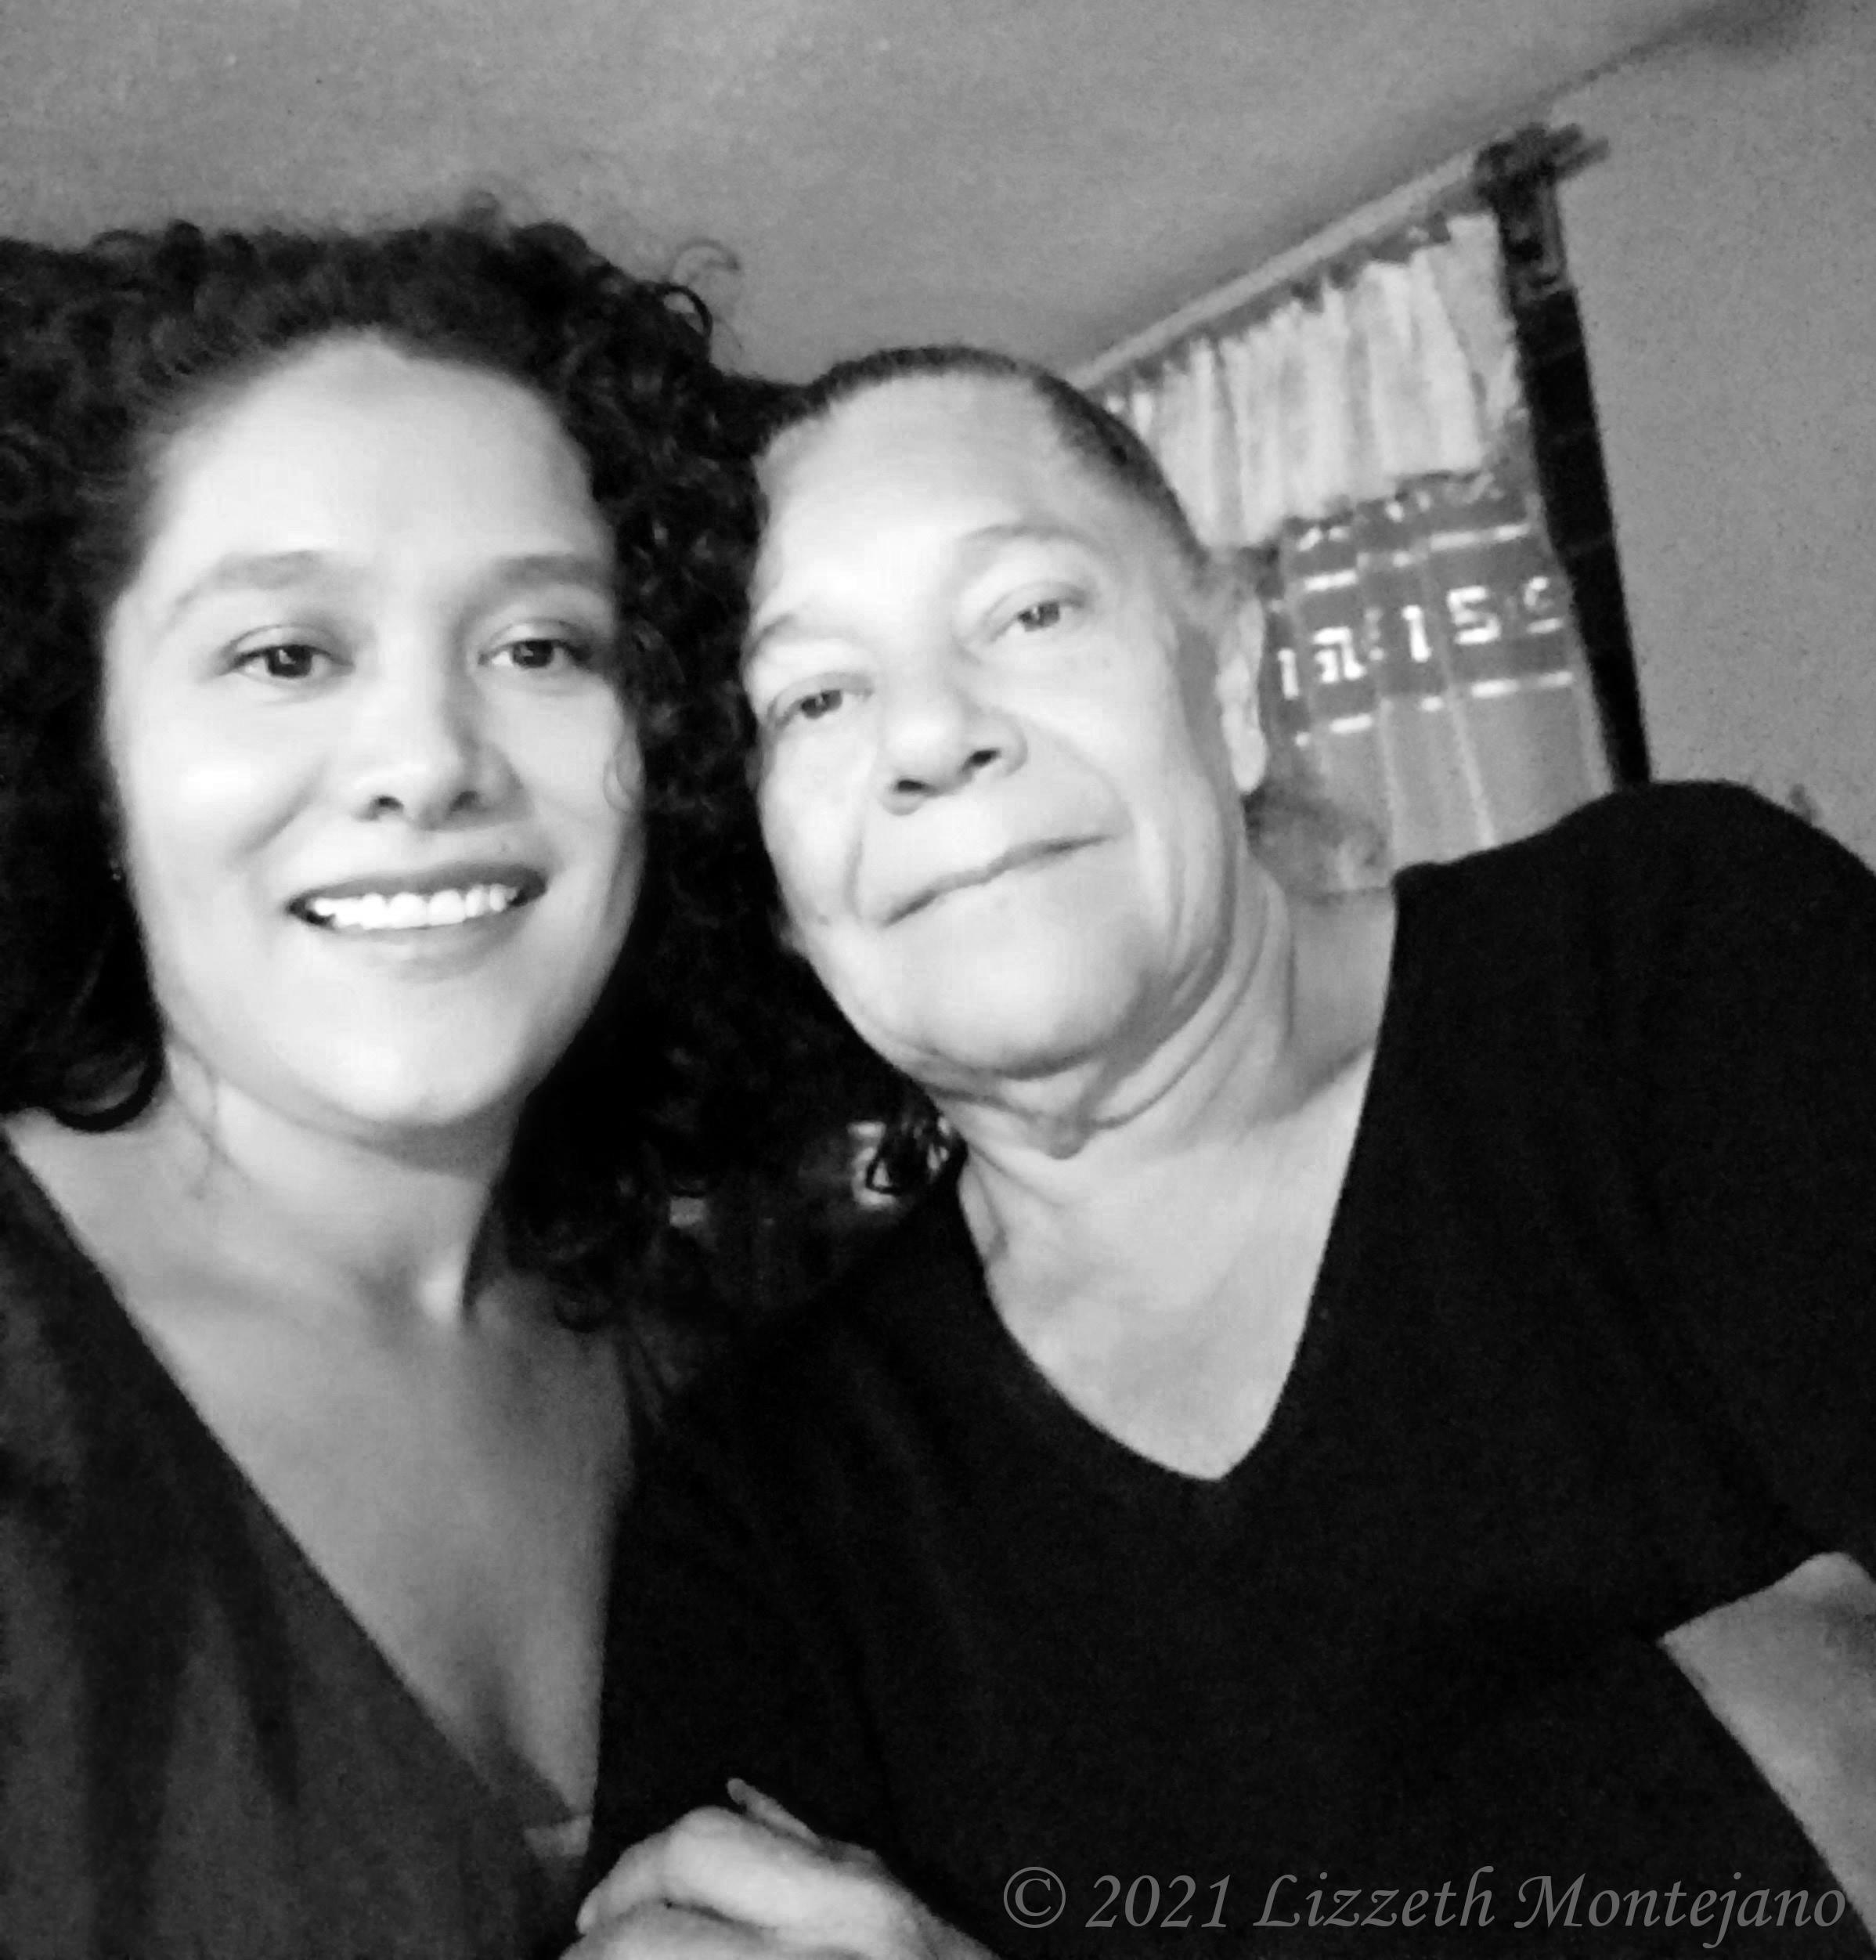 My Aunt and I during Christmas 2019 in San Luis Potosí.